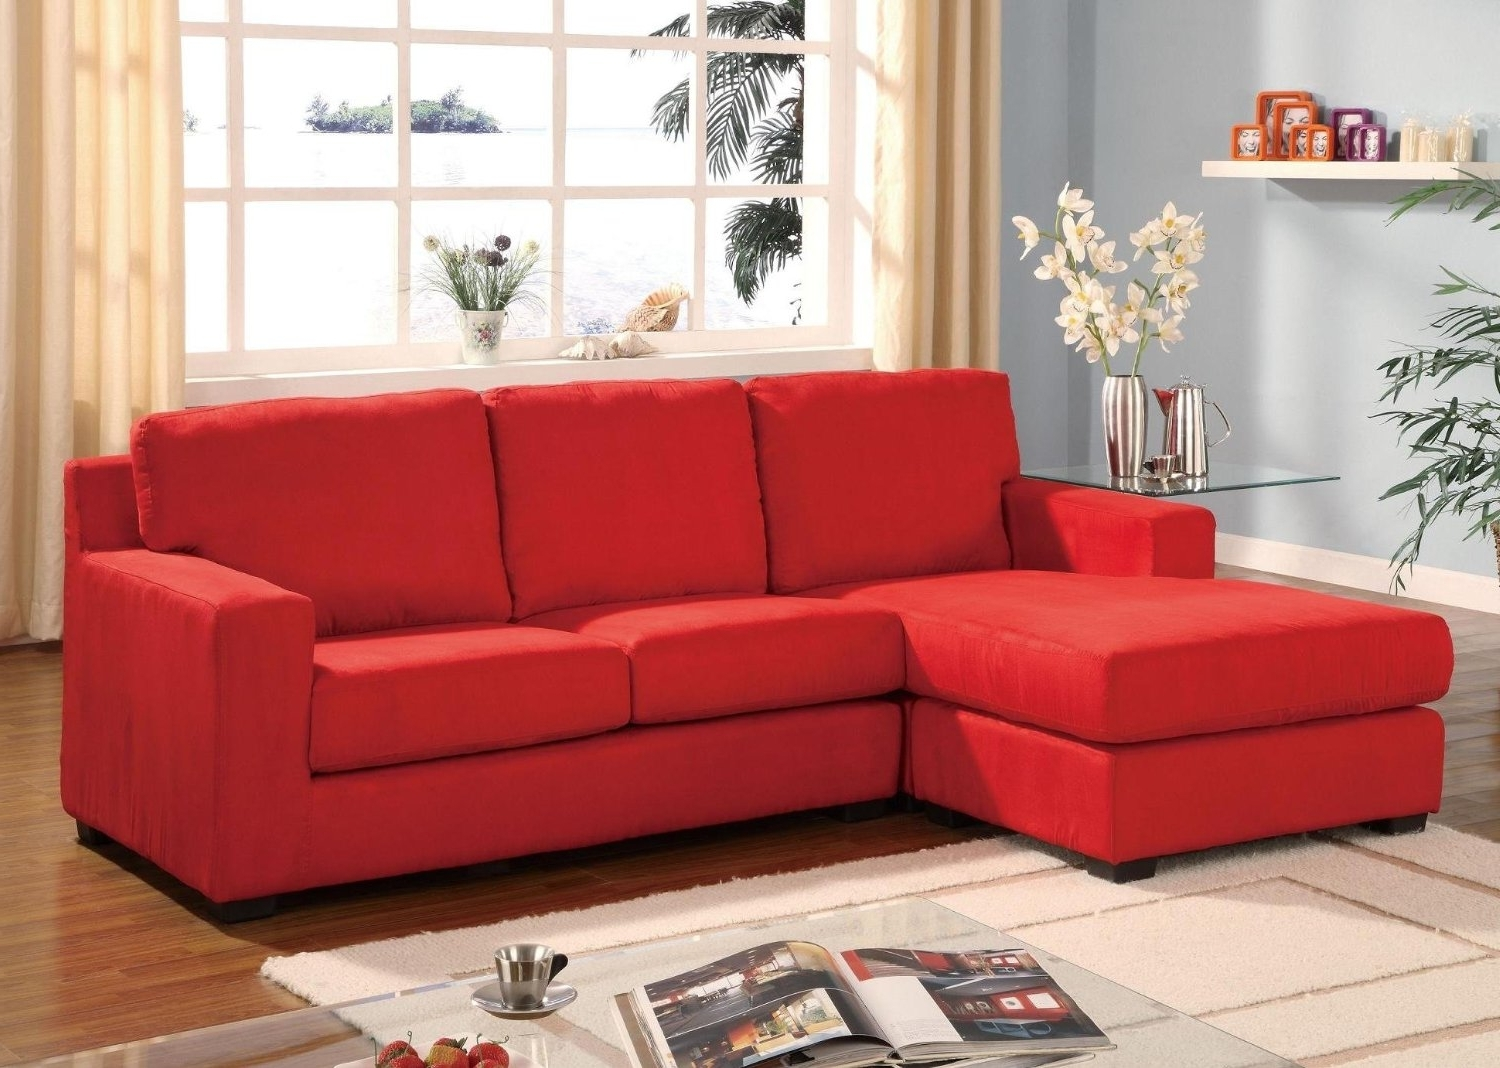 Red Sectional Sofas With Chaise Throughout Fashionable Small Sectional Sofa With Chaise, Red Microfiber Sectional Sofa (View 9 of 15)